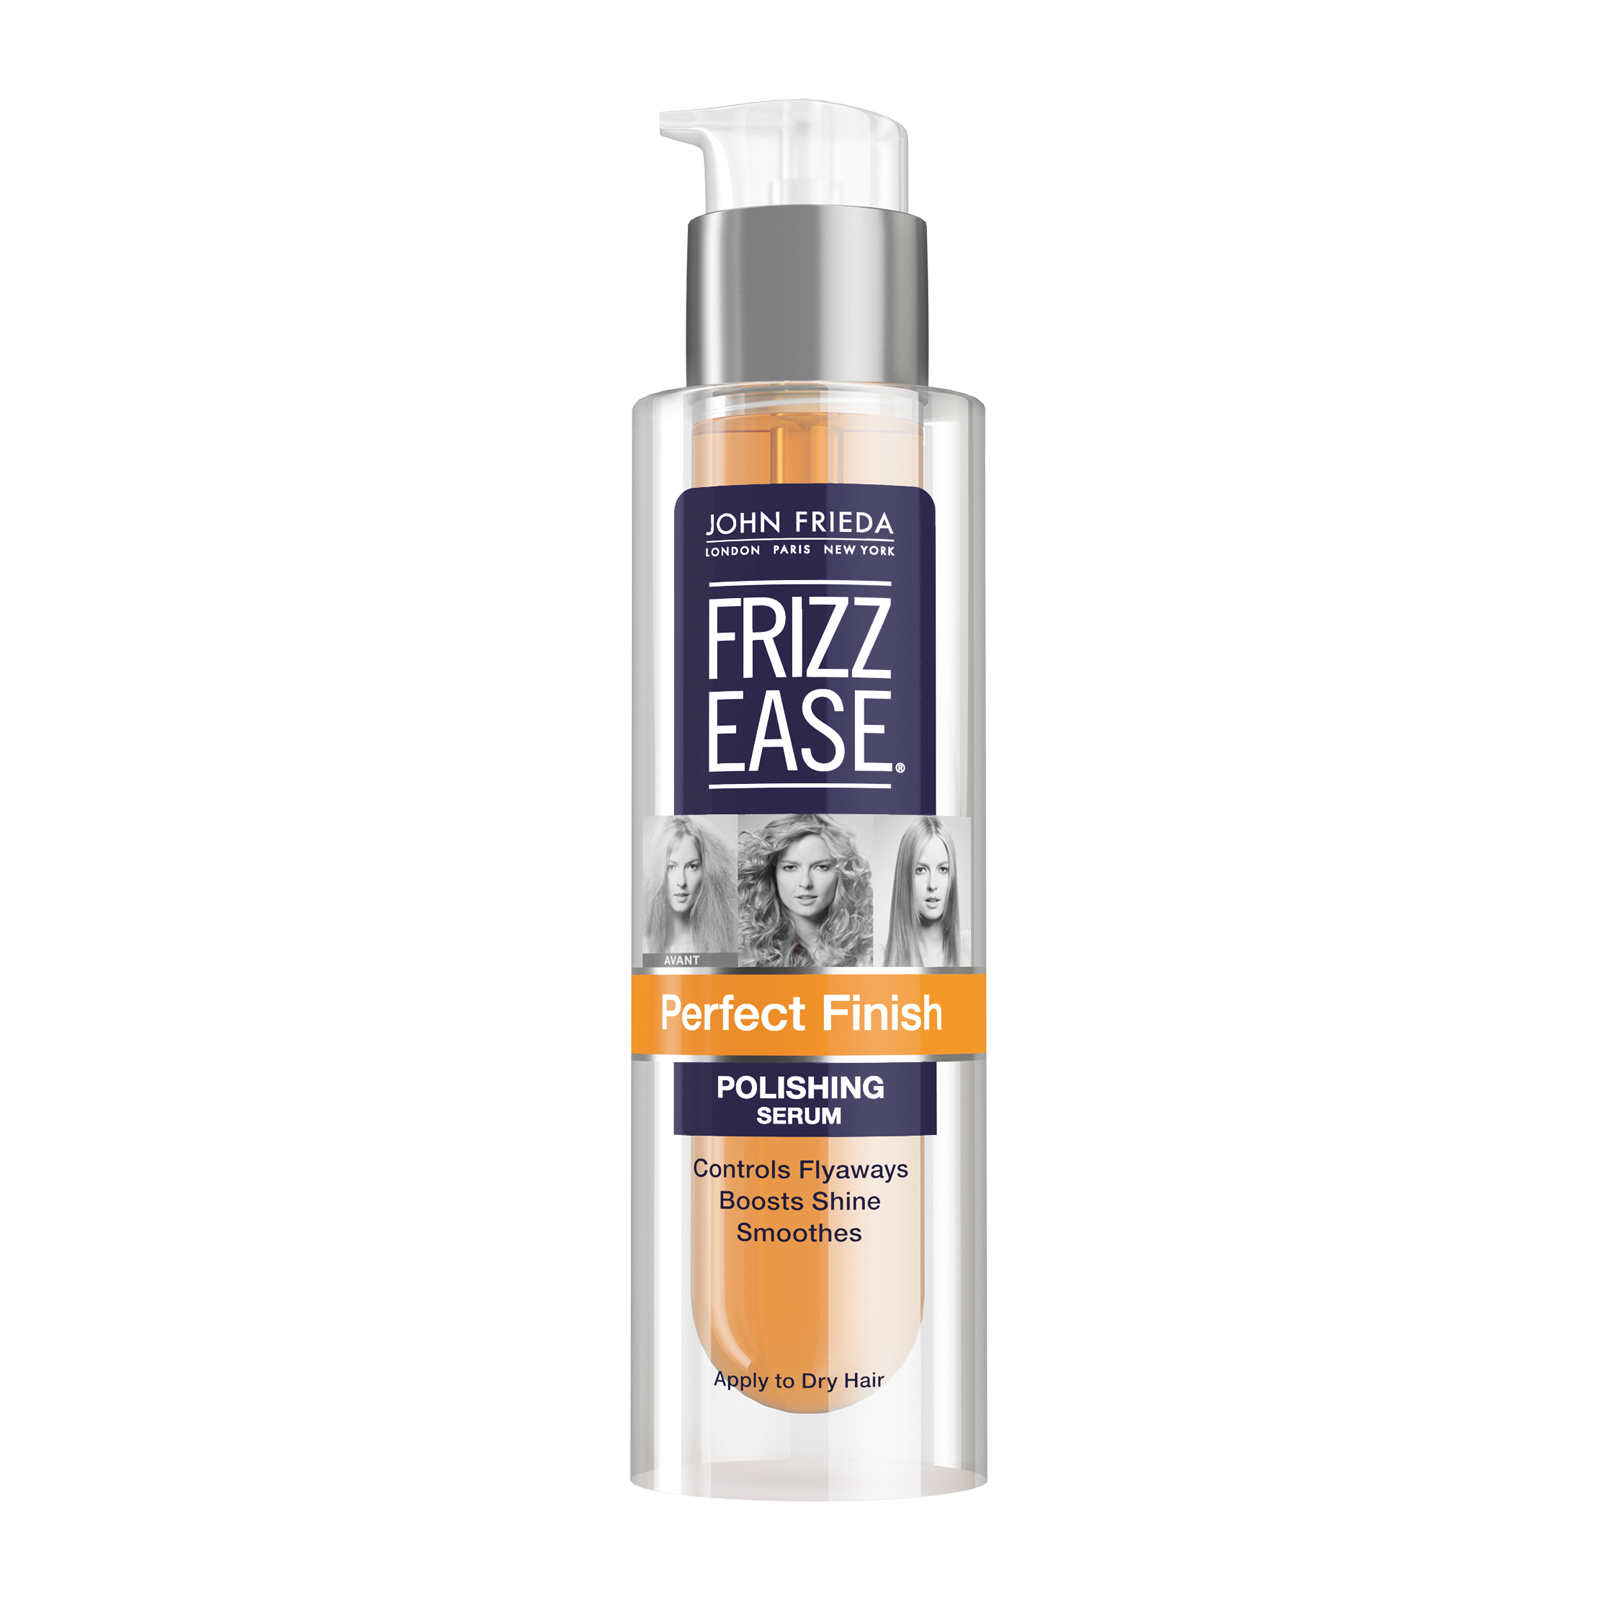 Frizz Ease Expert Hair Styler Free Sample